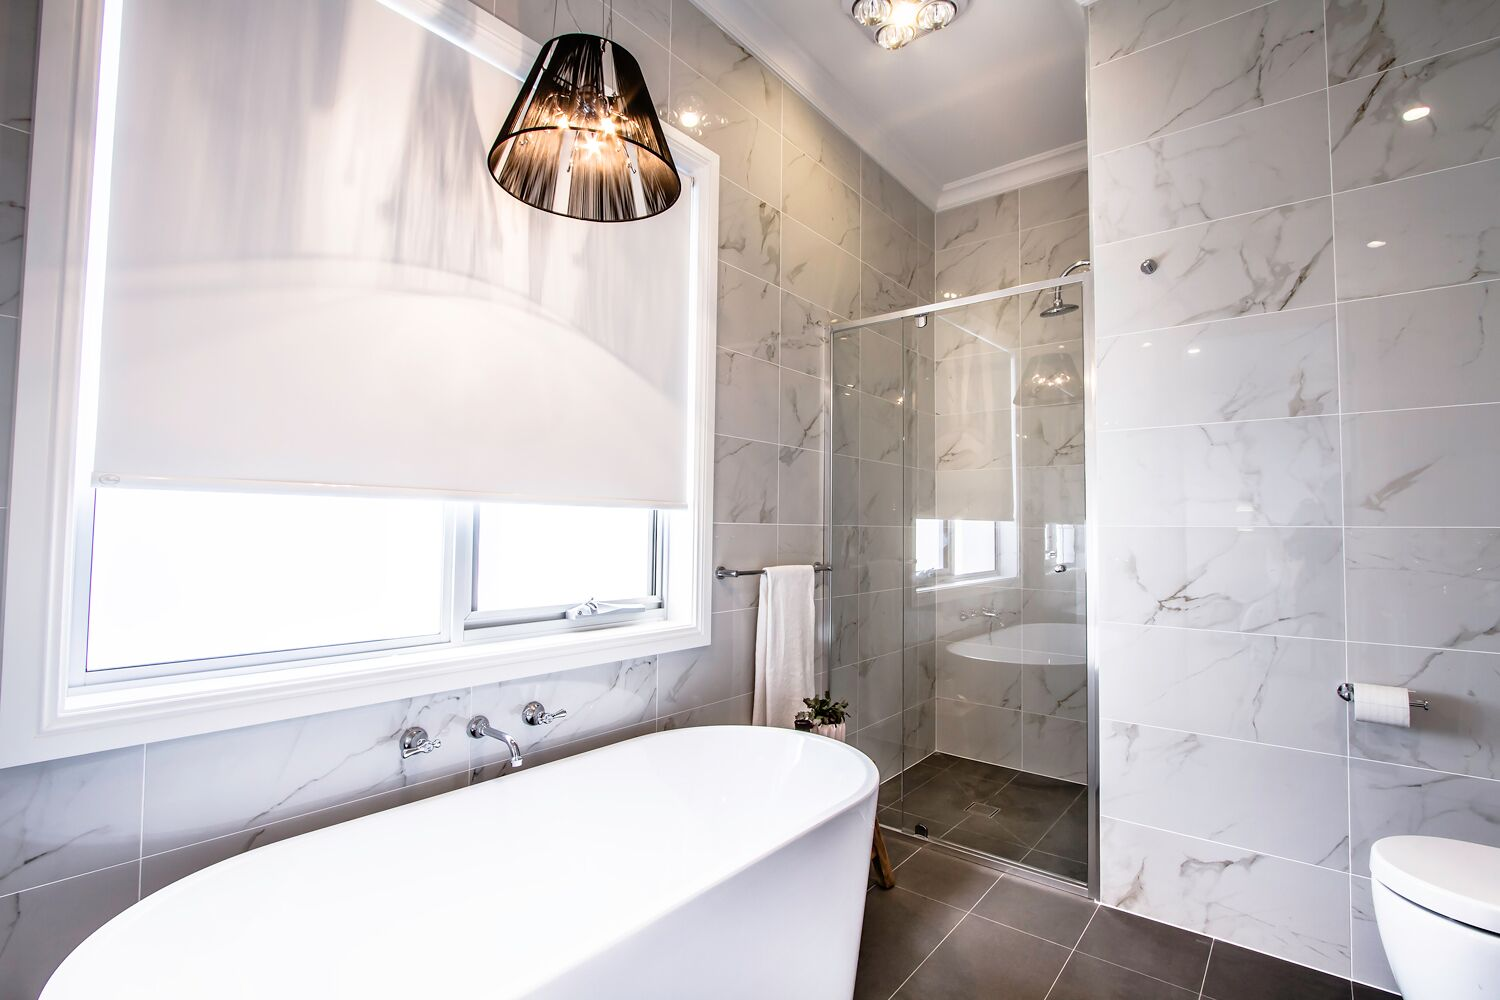 Bathroom | Products & Services | Affordable Tiles Adelaide